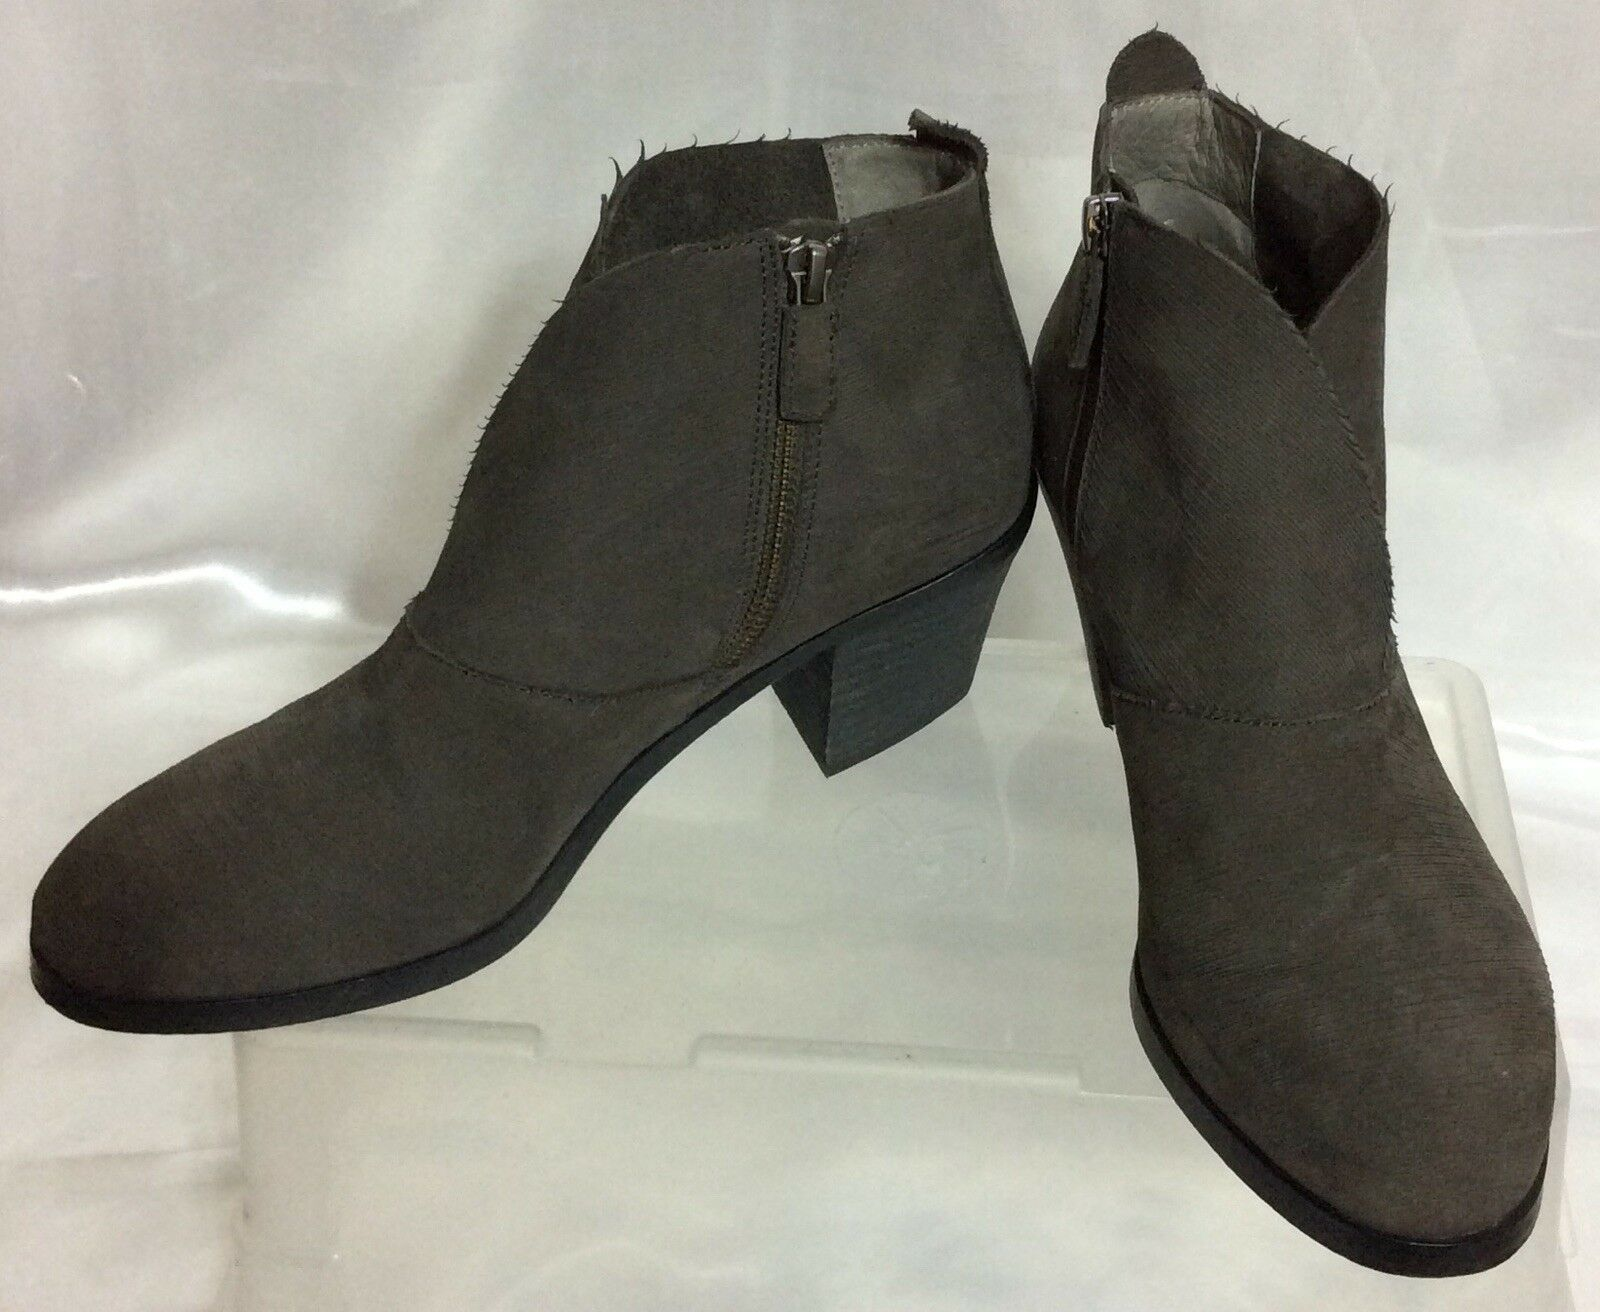 EILEEN FISHER  Grey Soft Soft Soft Leather Ankle Boots Women's Sz 7.5 b58483